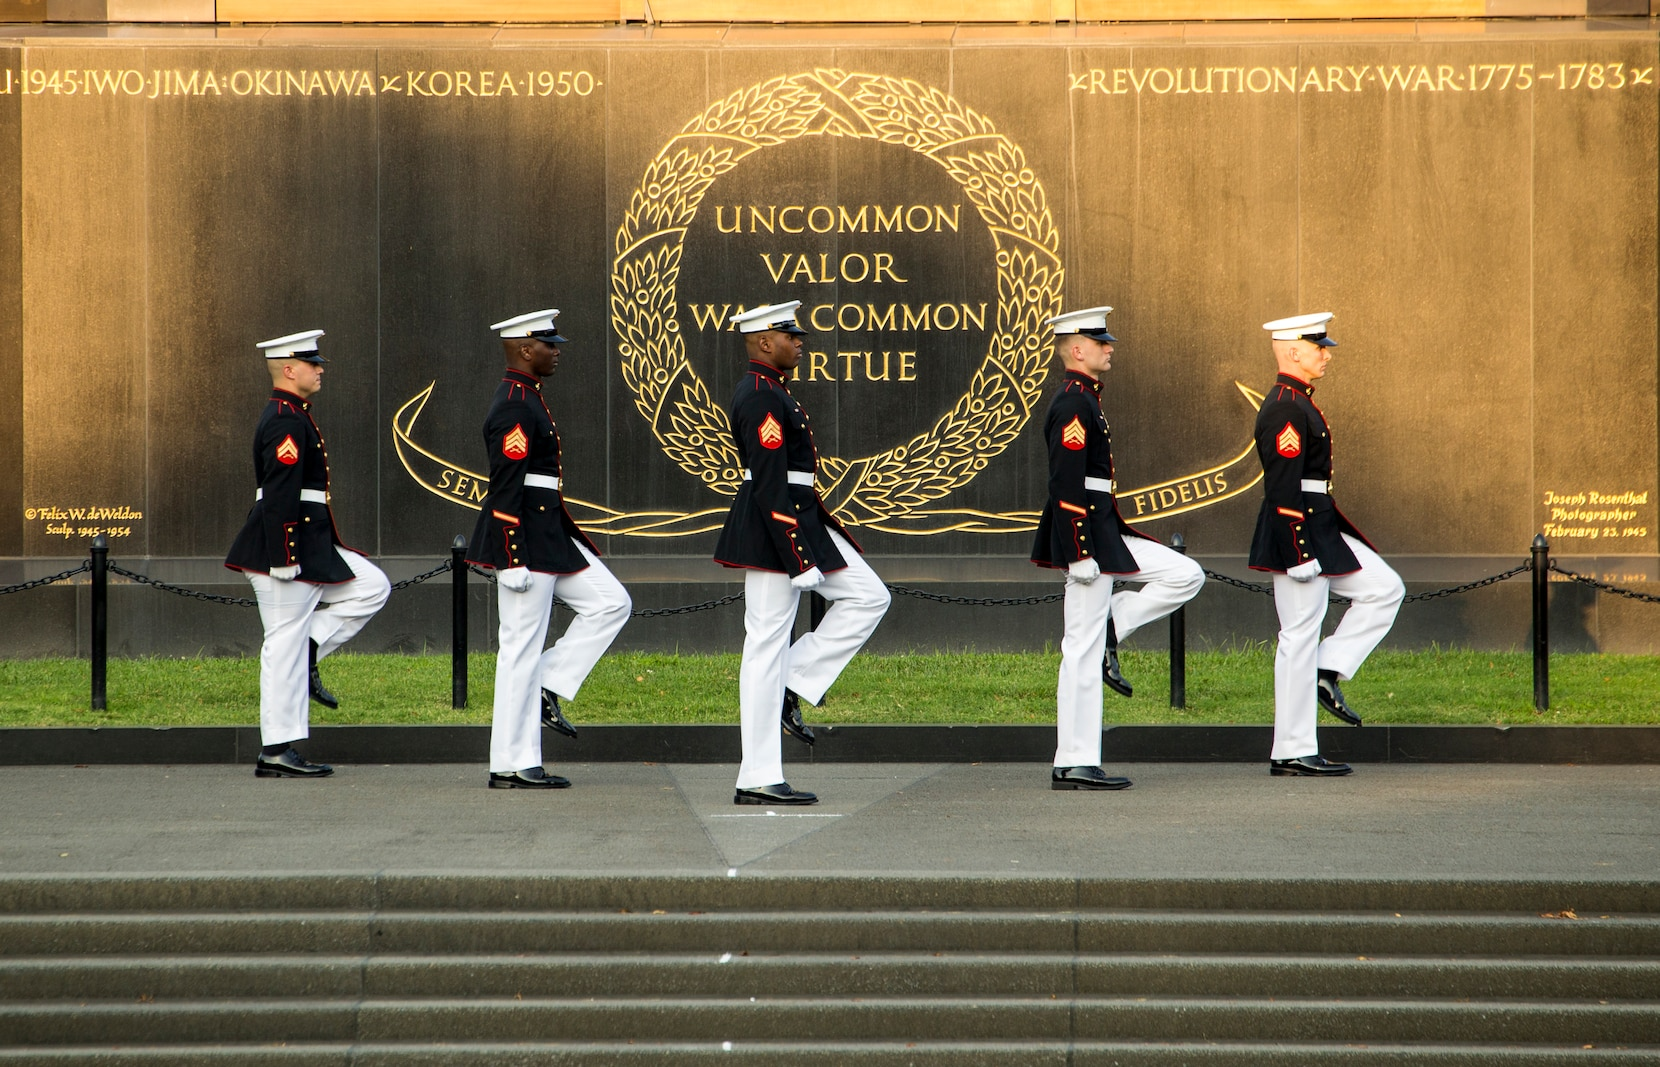 Marines with the parade staff march into position during the Non-Commissioned Officer Tuesday Sunset Parade at the Marine Corps War Memorial, Arlington, Va., July 27, 2021.